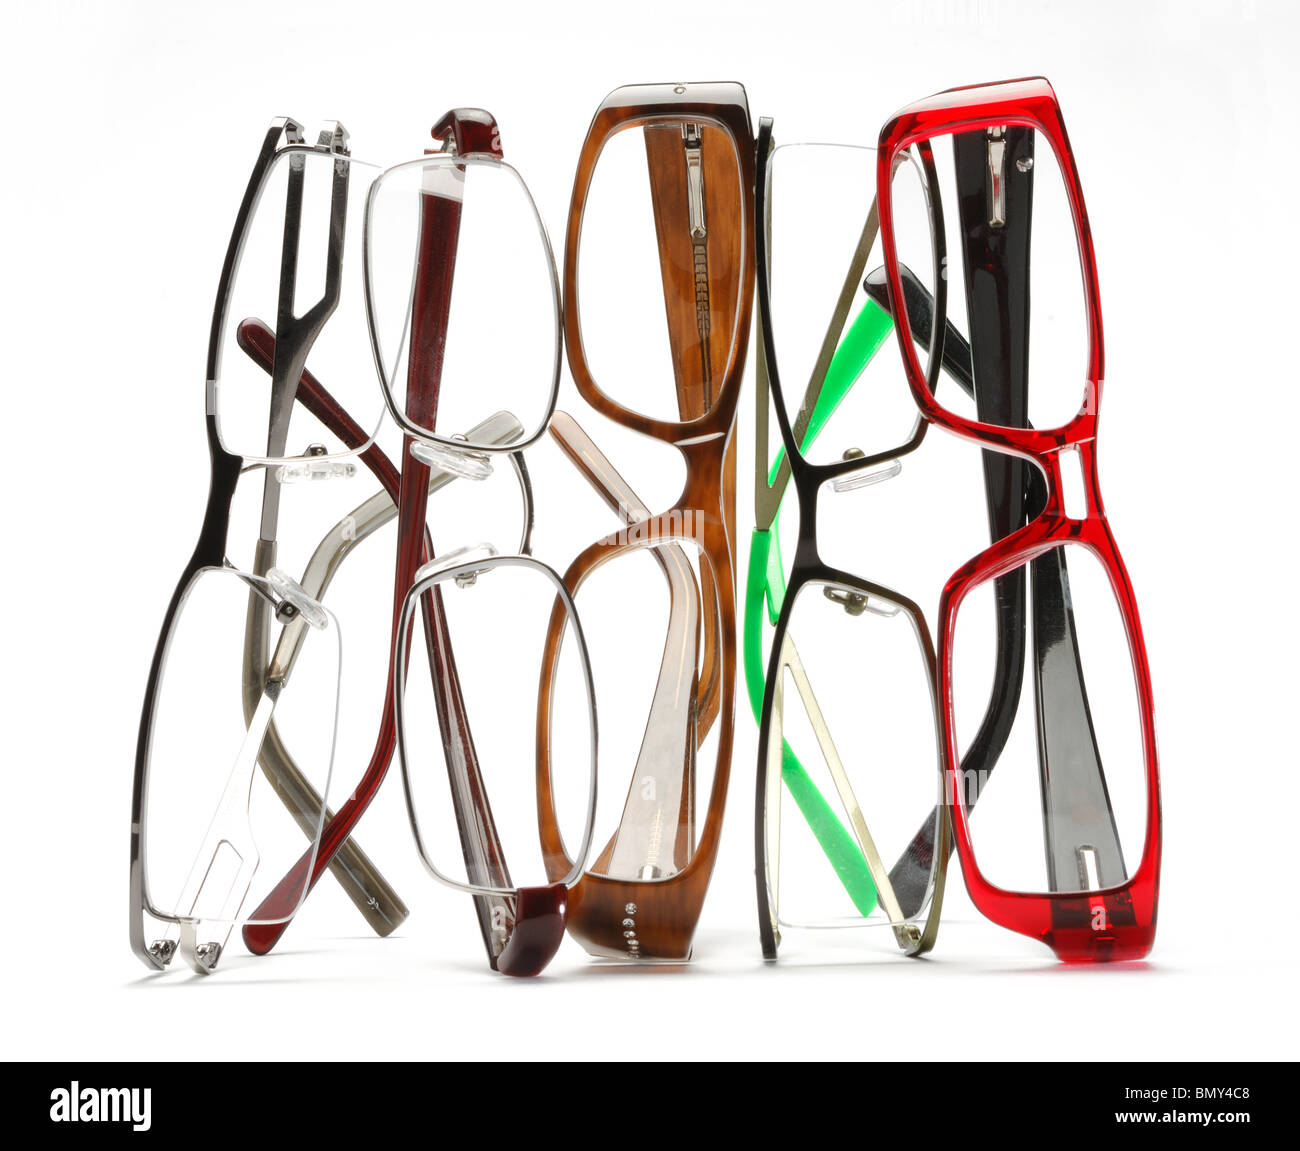 A stack of colorful eye glasses on a white background - Stock Image